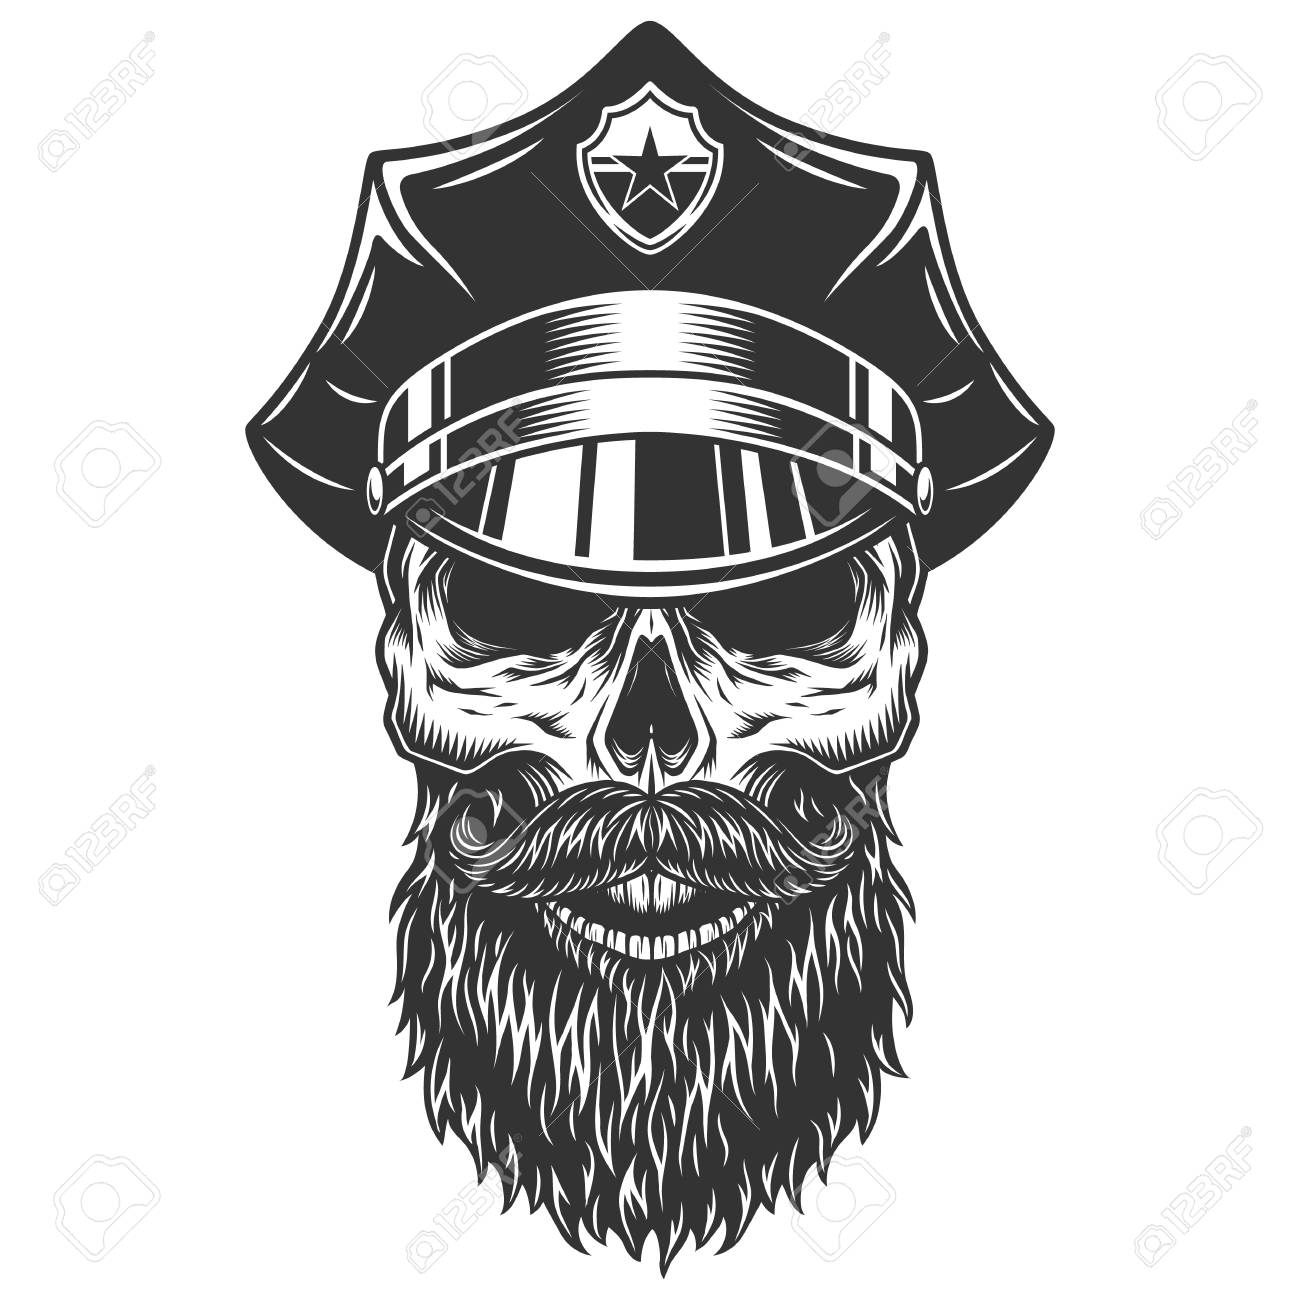 skull in the policeman hat royalty free cliparts vectors and stock